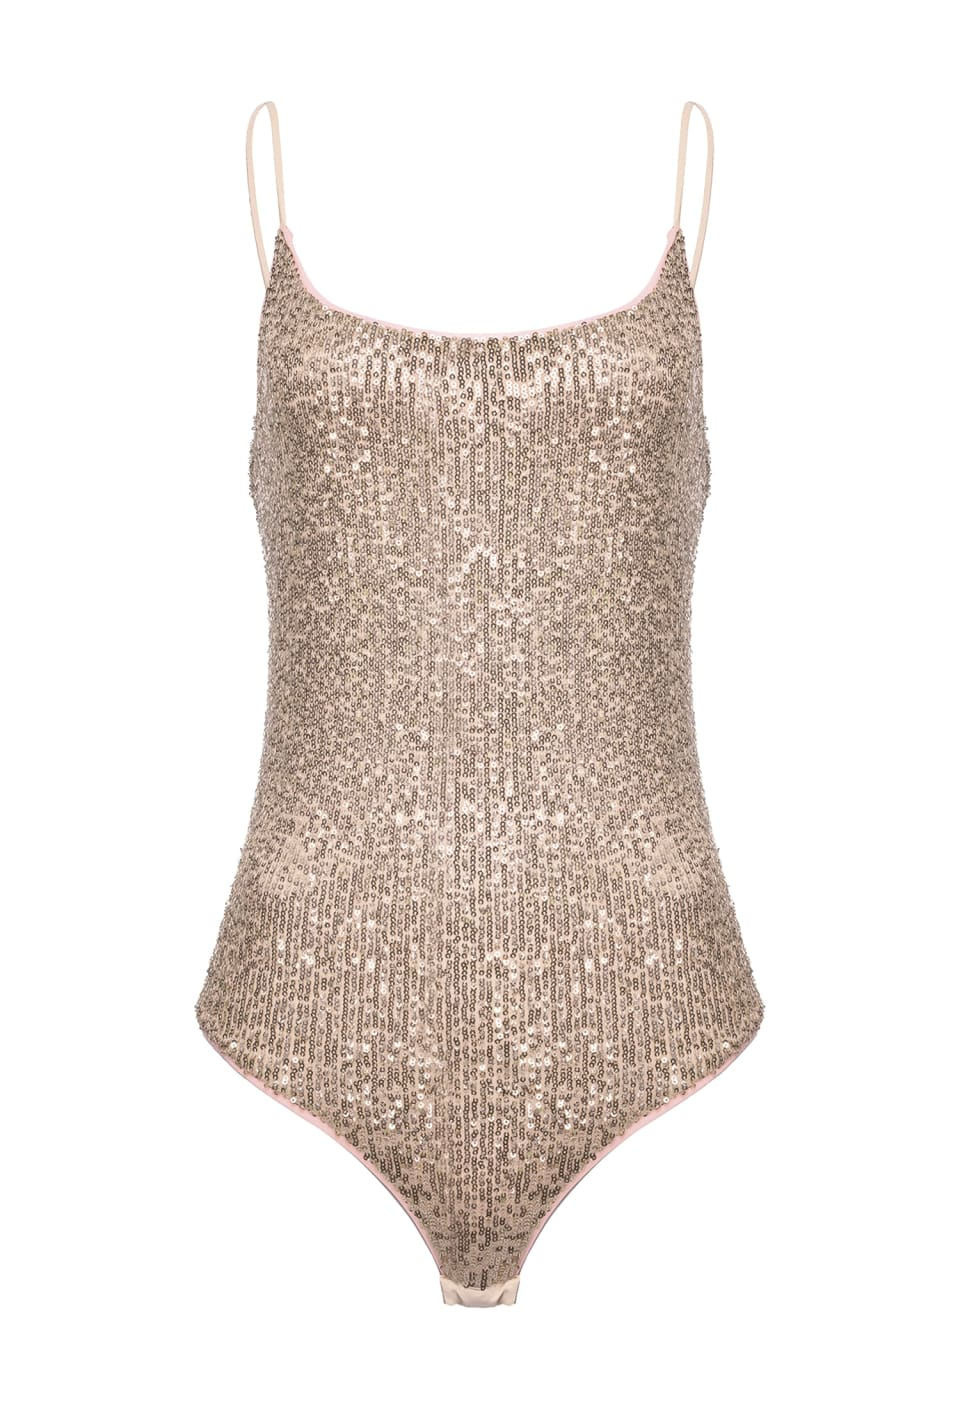 Bodysuit in full shaded sequins - Pinko